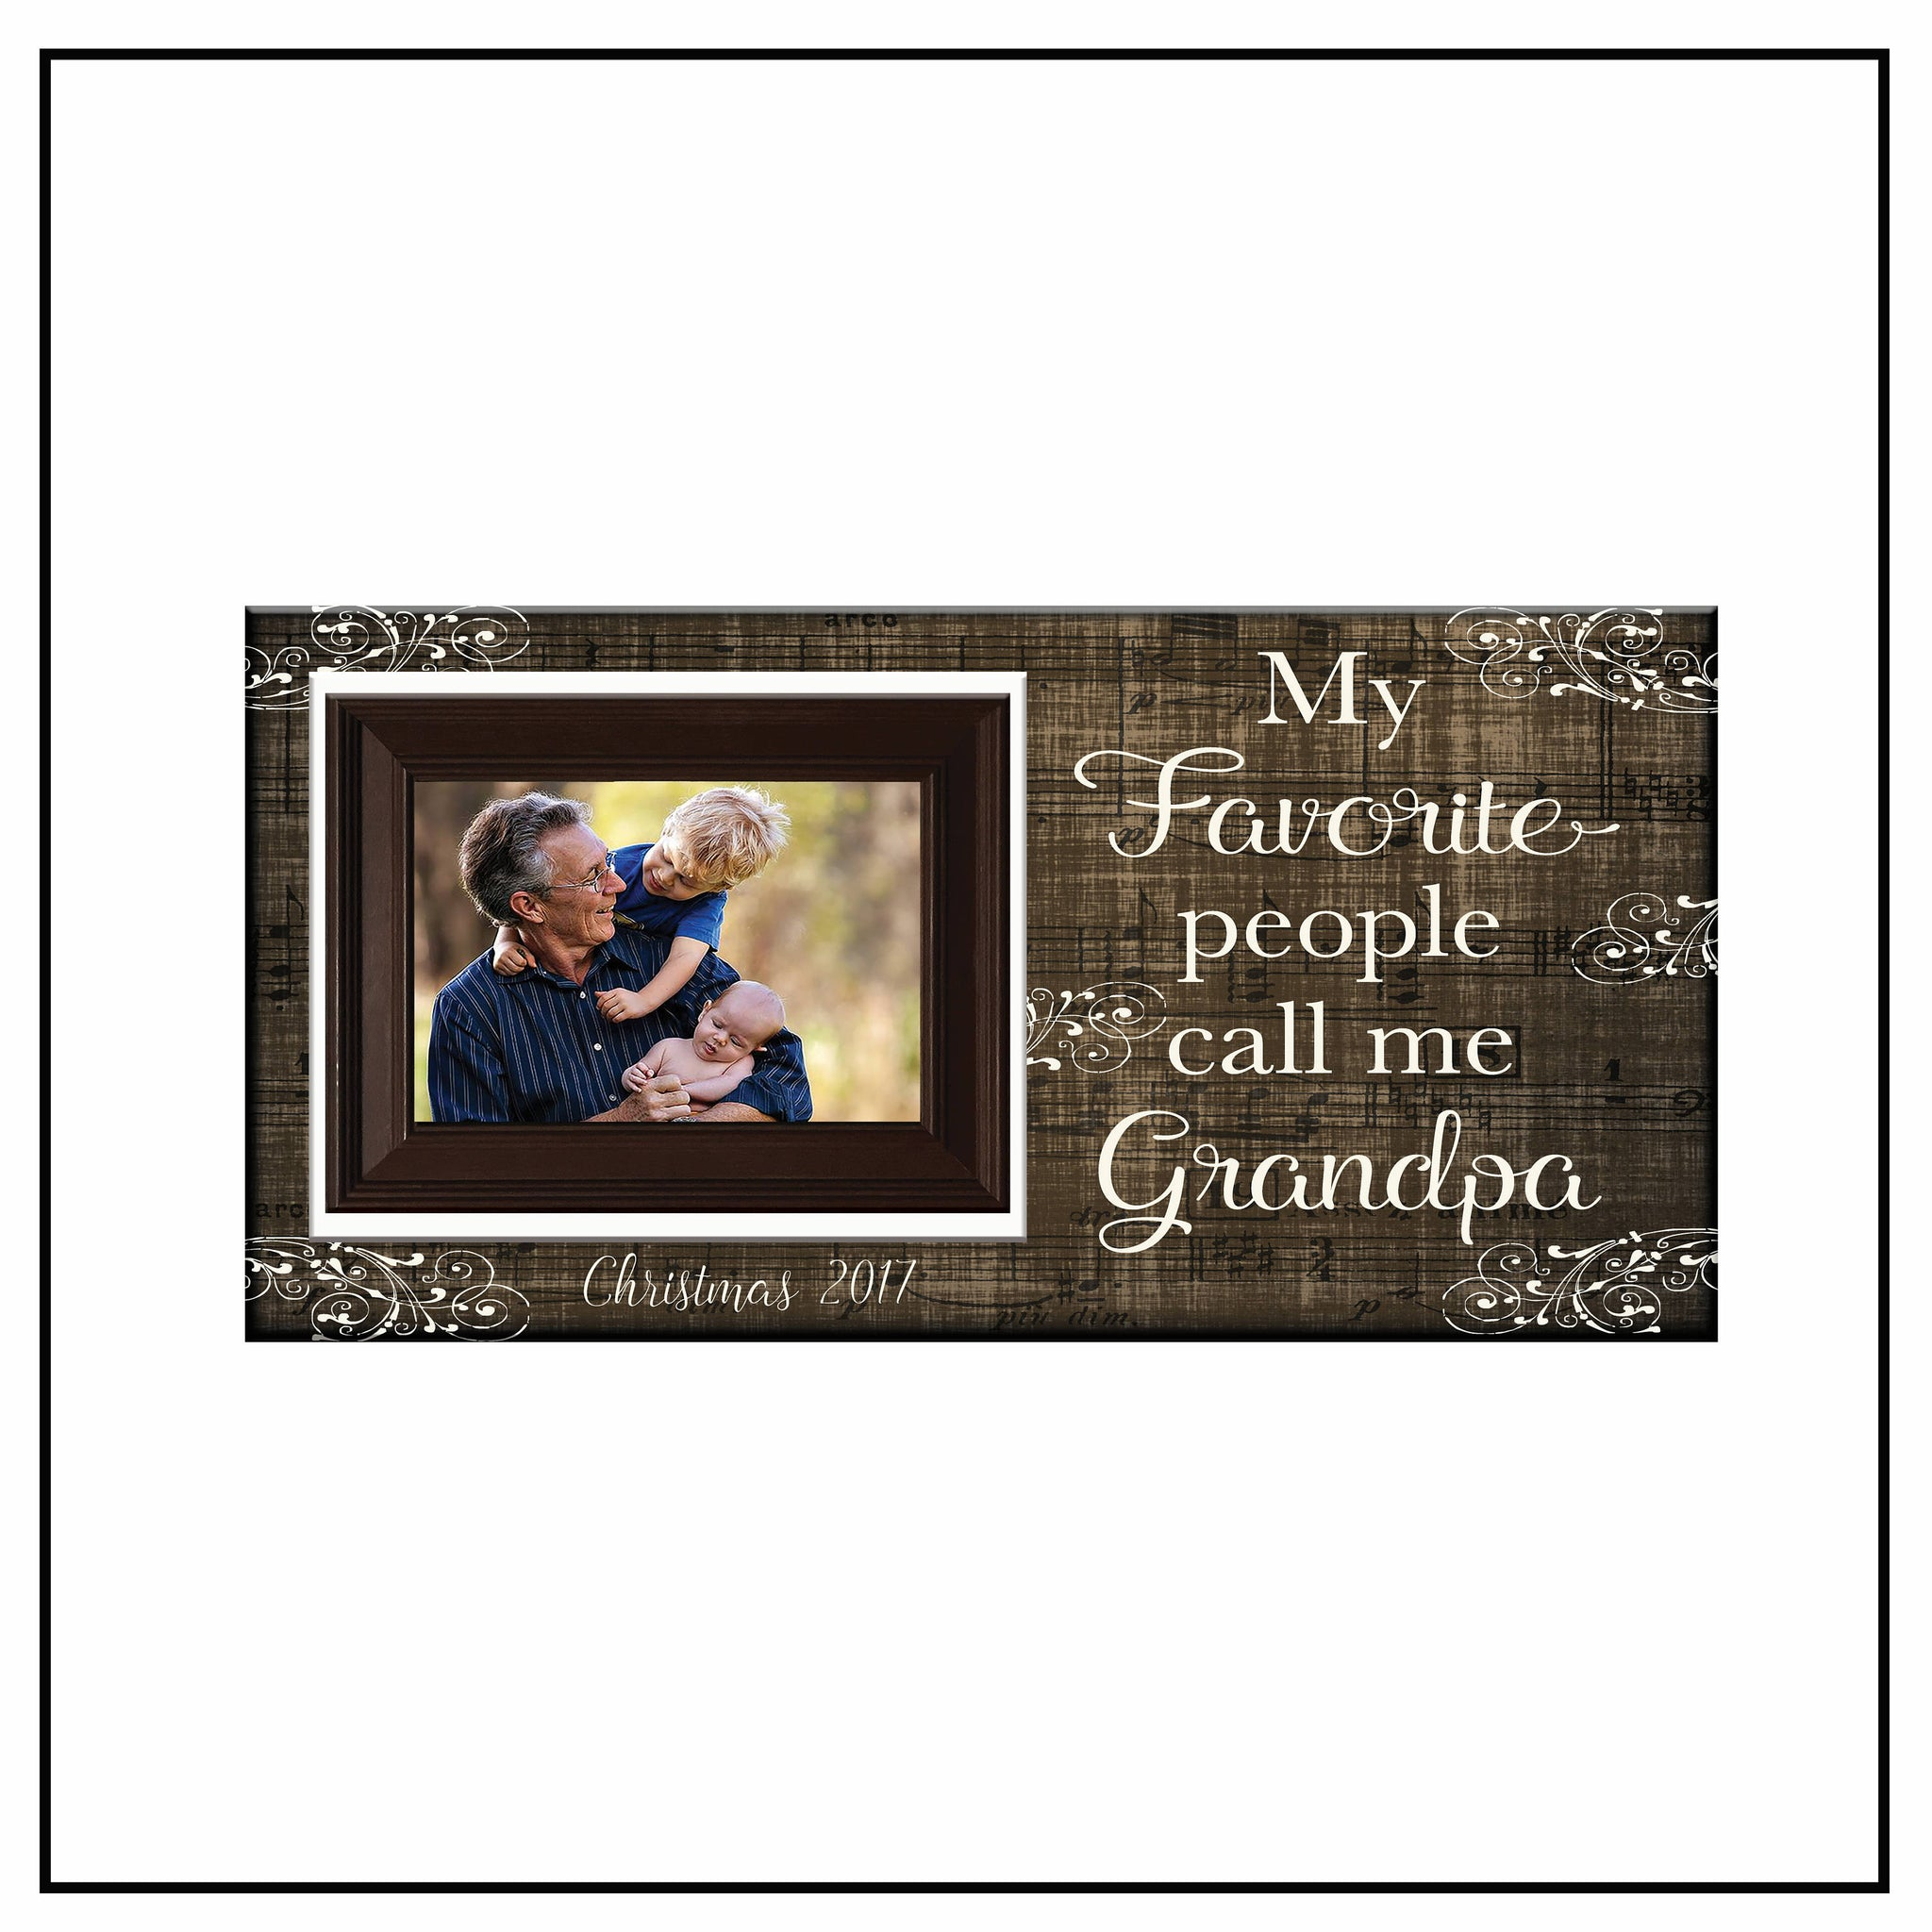 Great Grandad Photo Picture Frame Fathers Day Birthday Christmas Grandpa Gifts